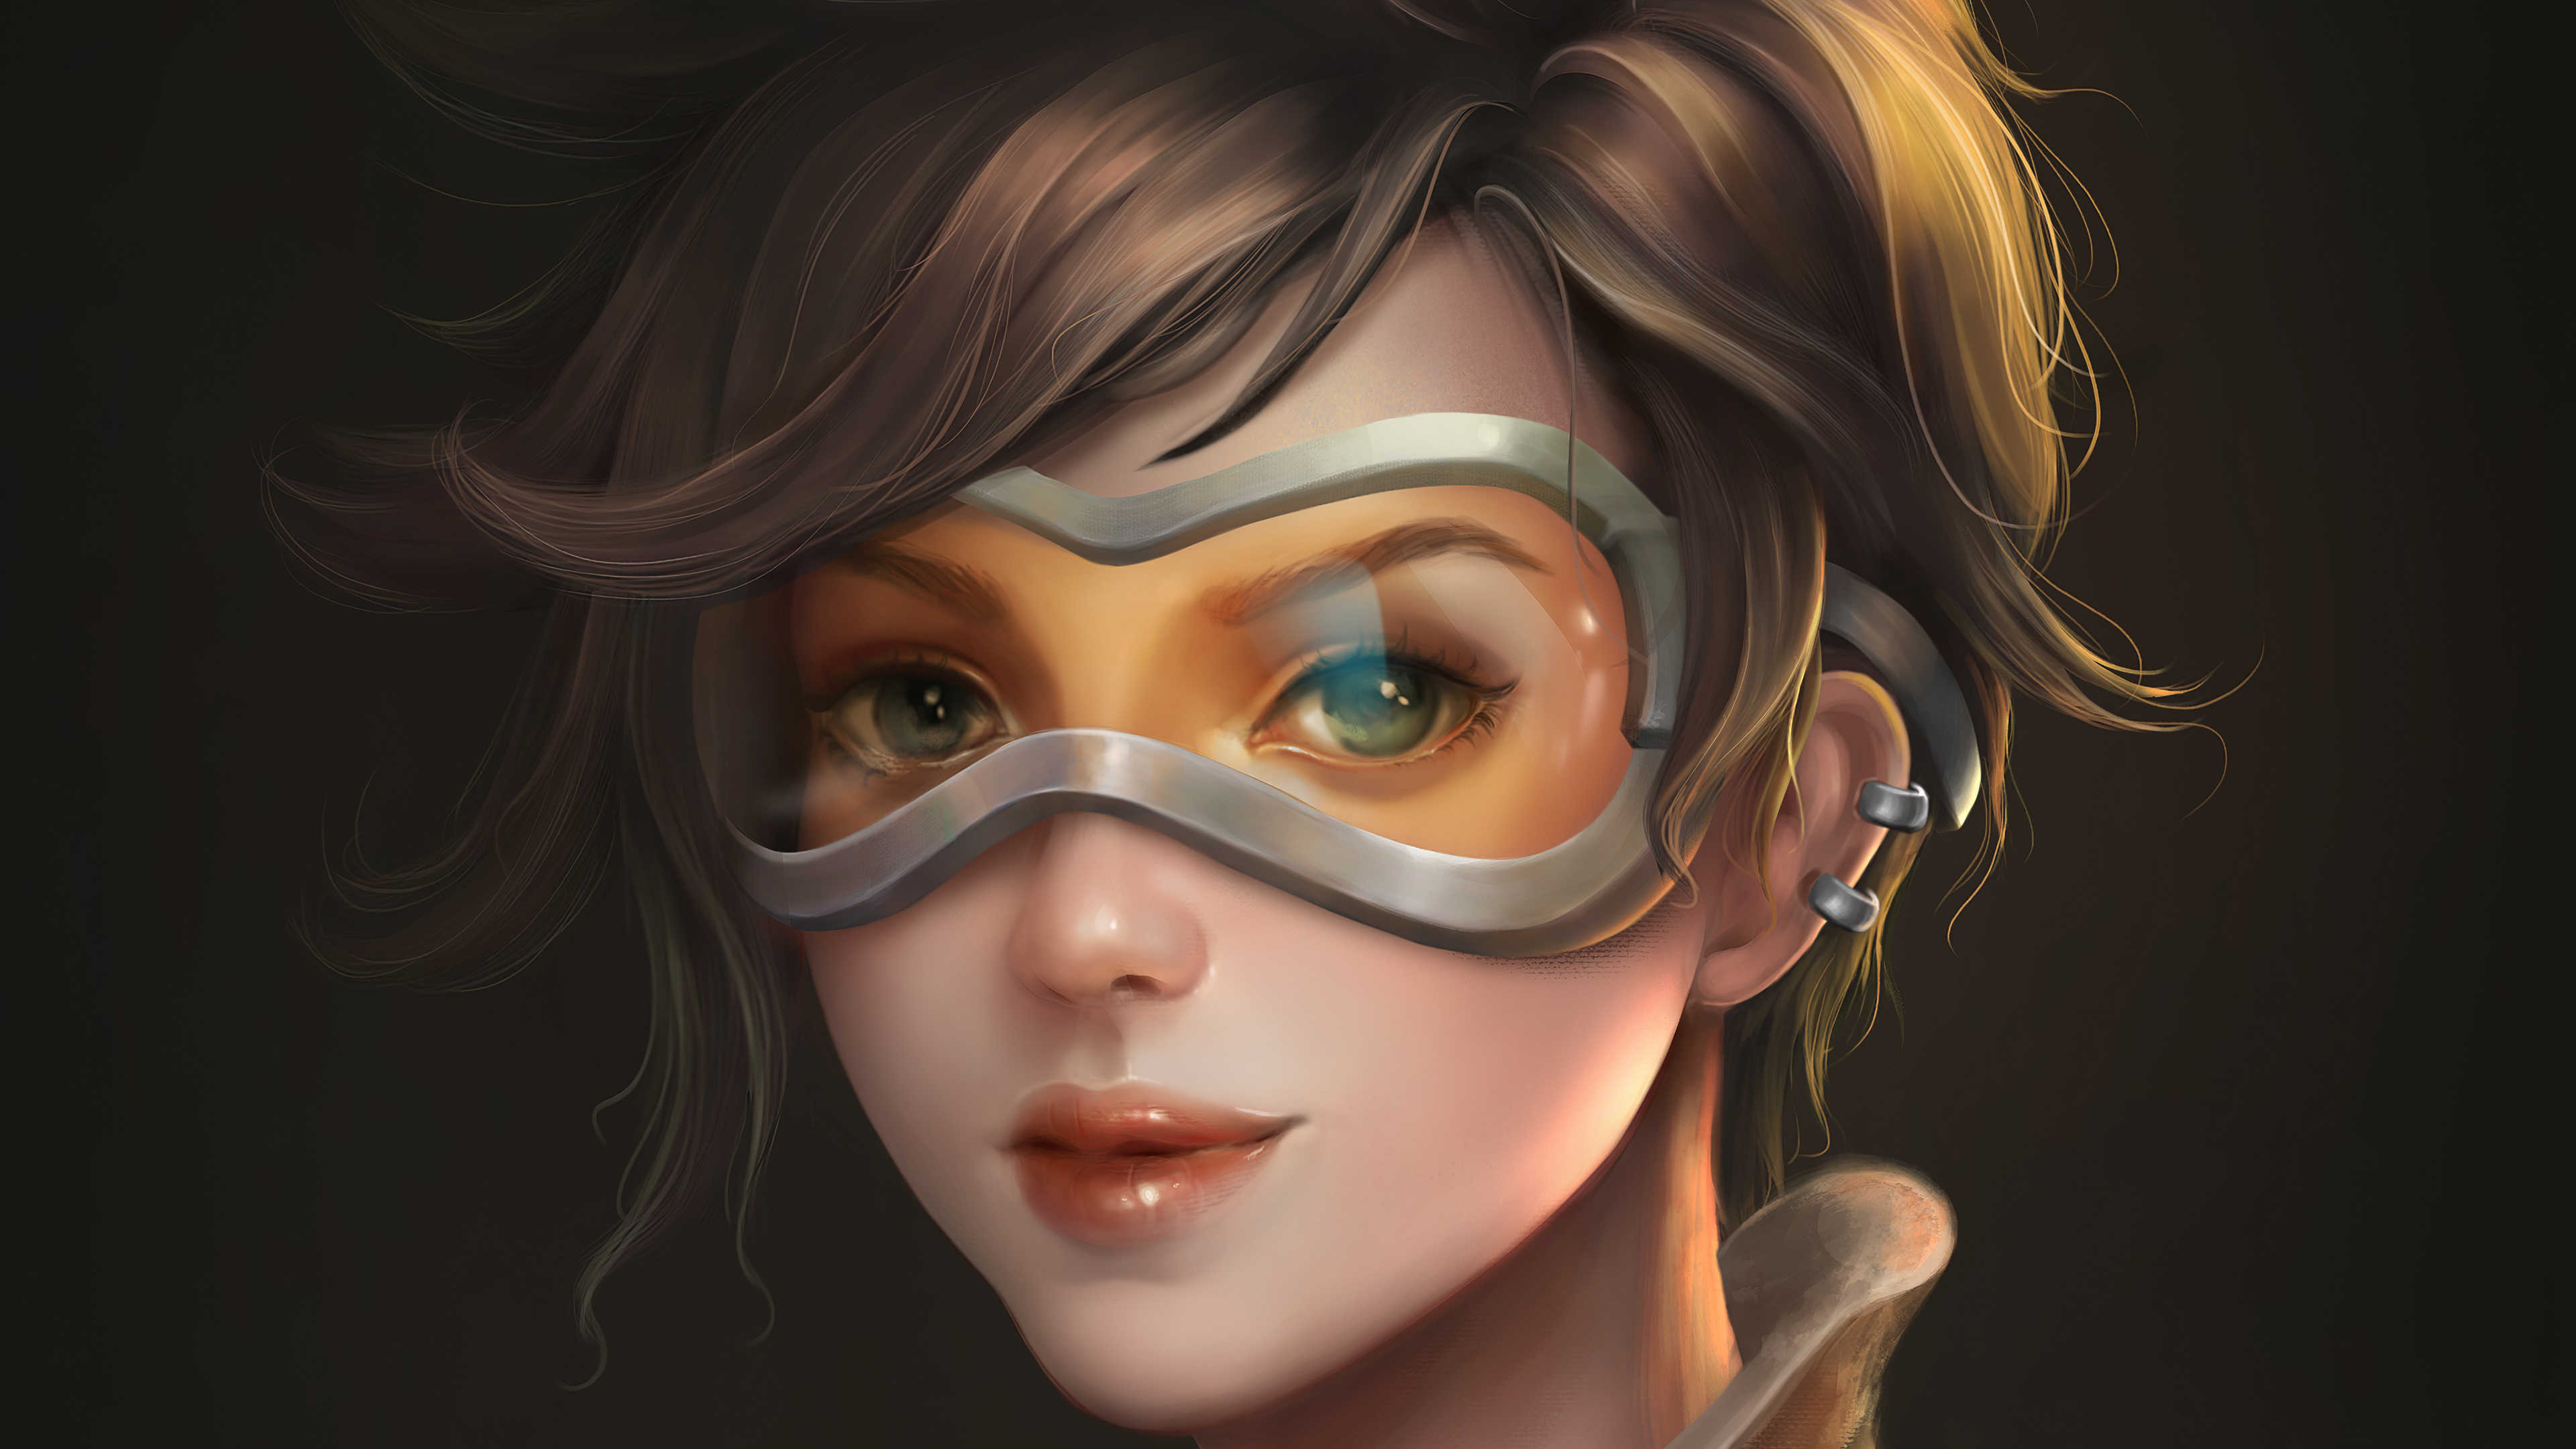 Overwatch Hd Wallpaper And Image Wallpaper Background